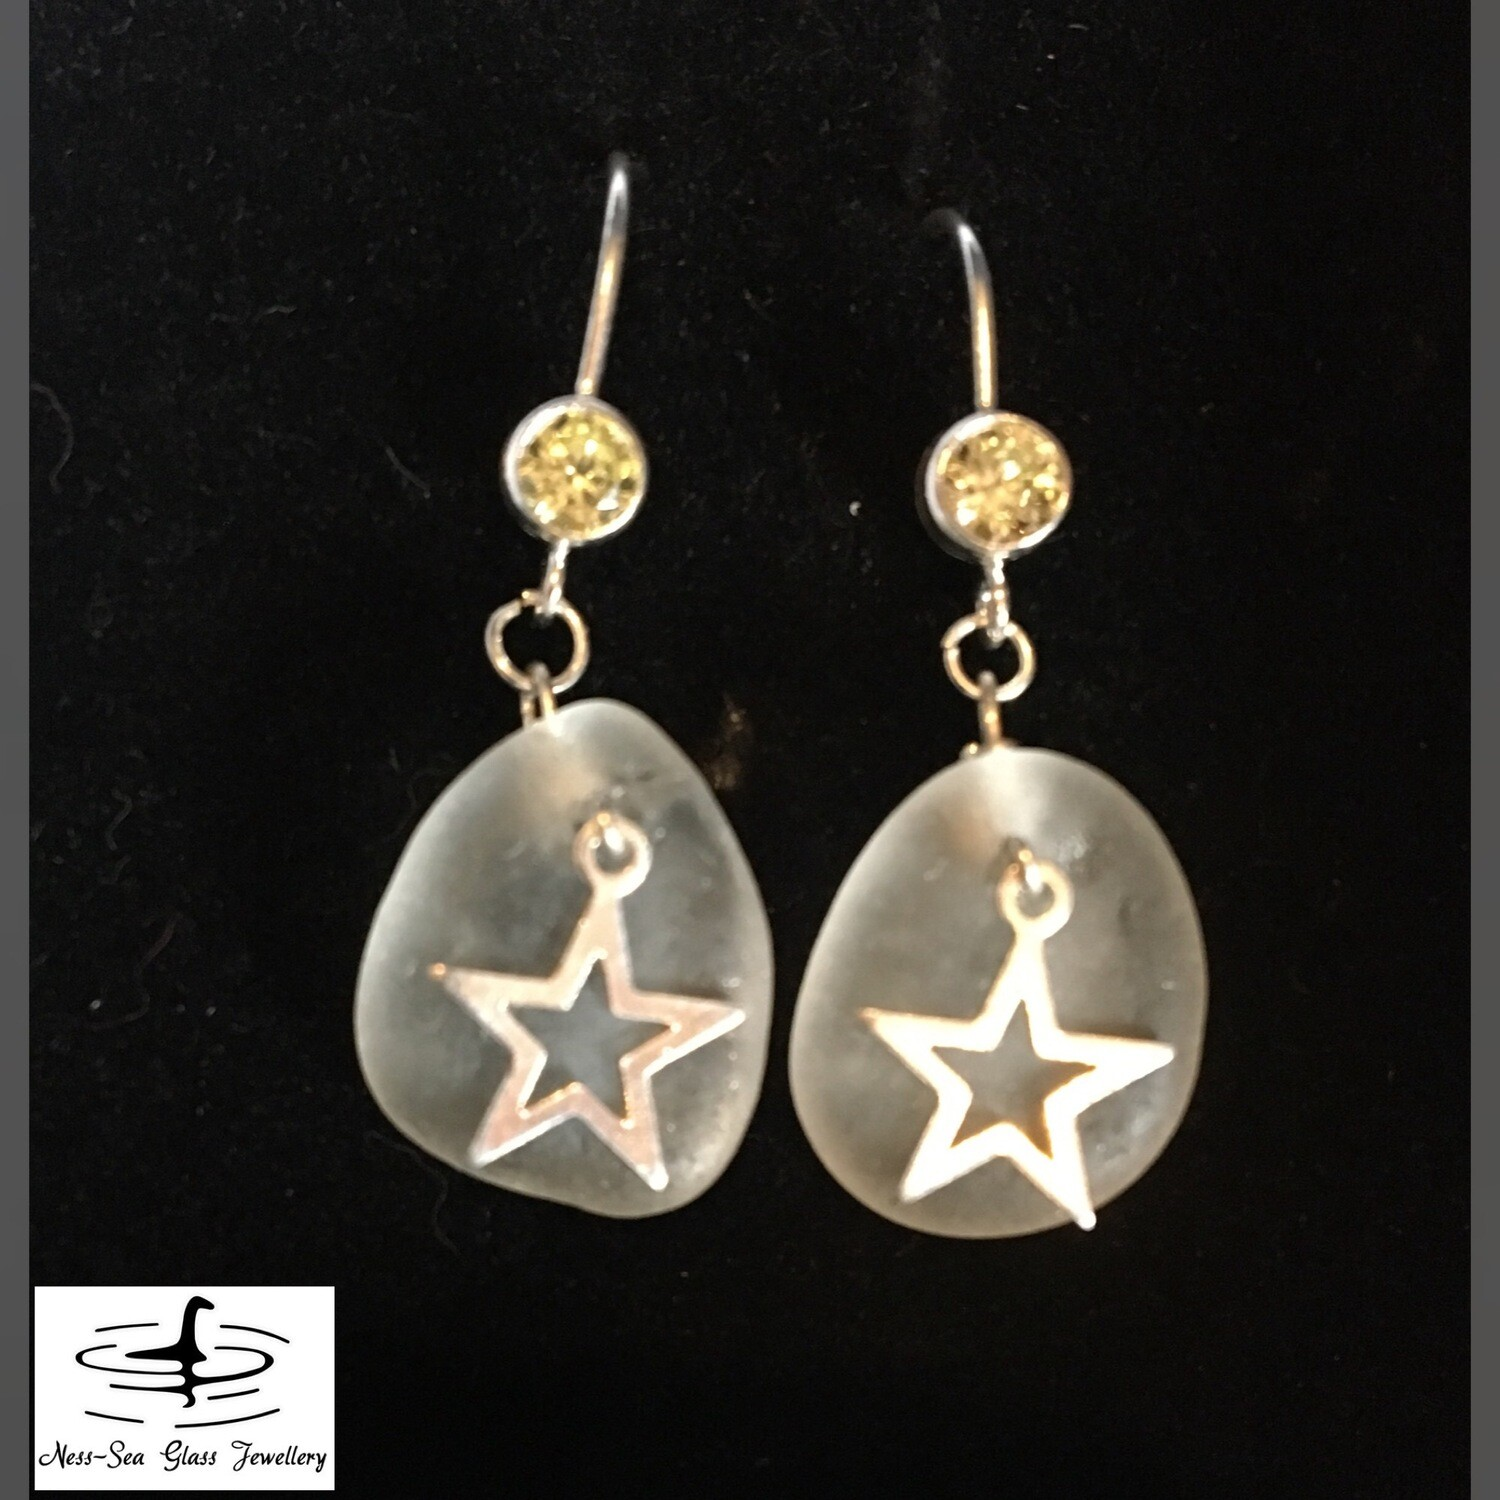 Clear Loch Ness Sea Glass Earrings with Lime Green Cubic Zirconia design and Sterling Silver Stars